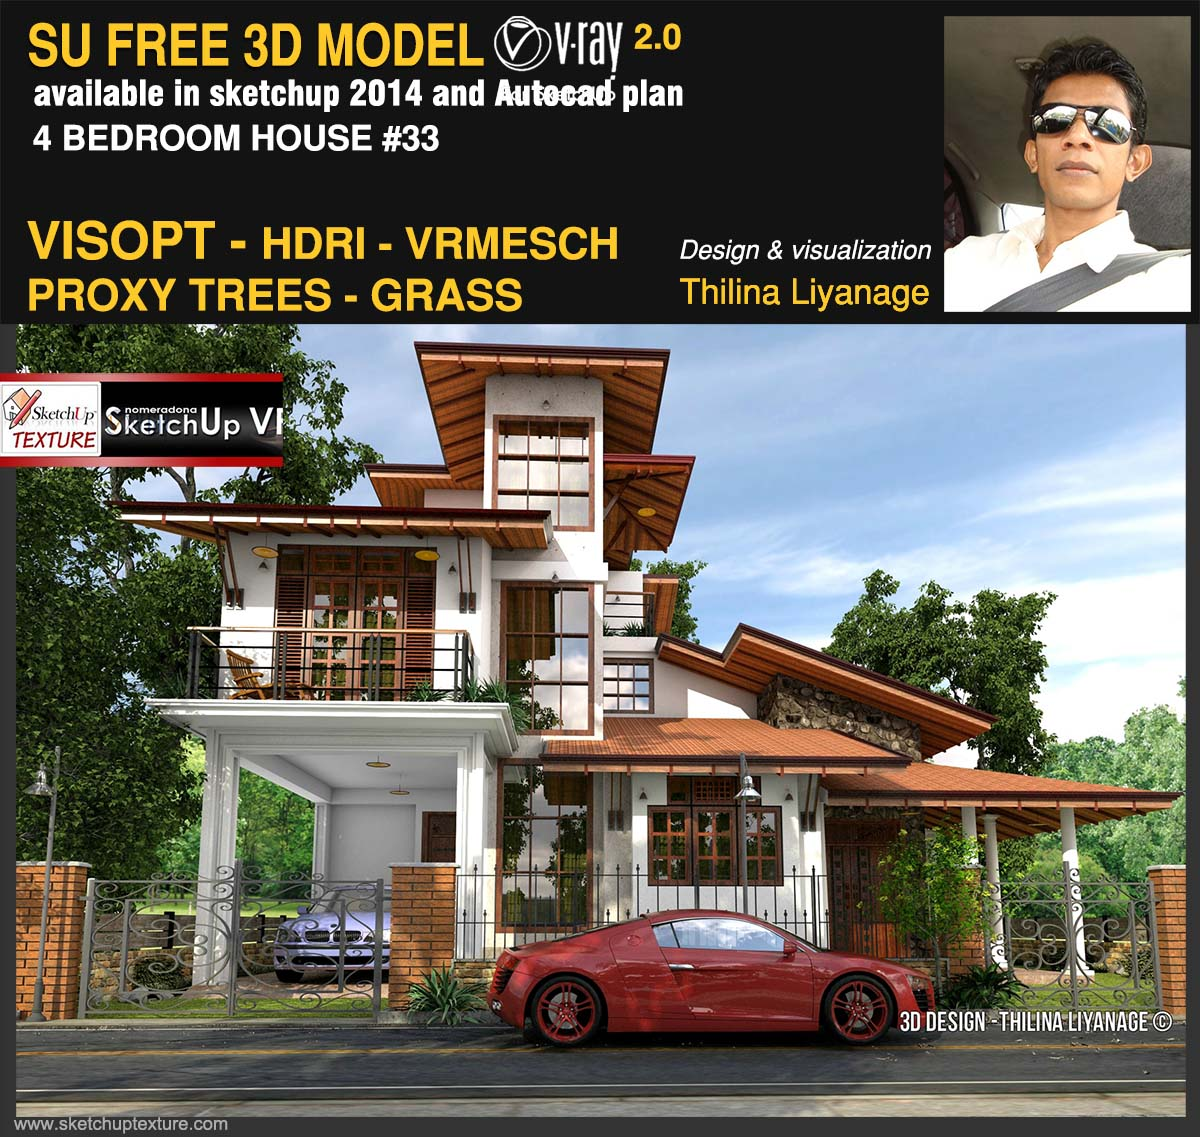 33#sketchup 3d model 4 bedroom house  vray 2.0 render by Thilina Liyanage